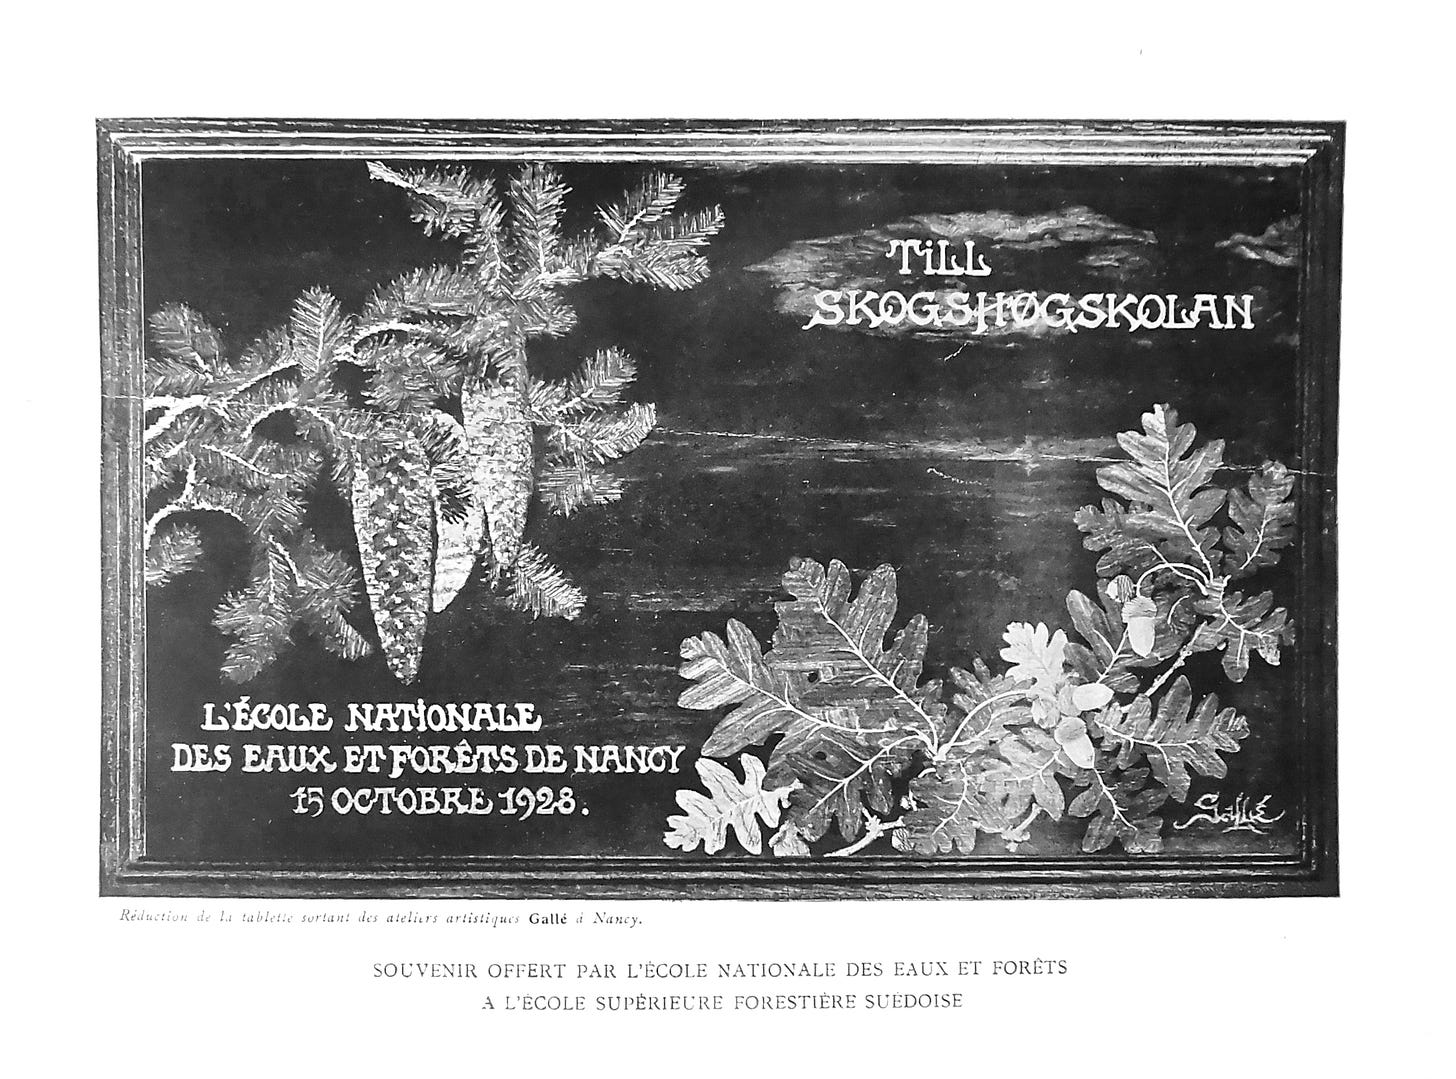 Auguste Herbst, Oak and spruce tray signed with the Mk IX, gift from the École nationale des eaux et forêts to their Swedish counterpart, 15/10/1928 (private collection).